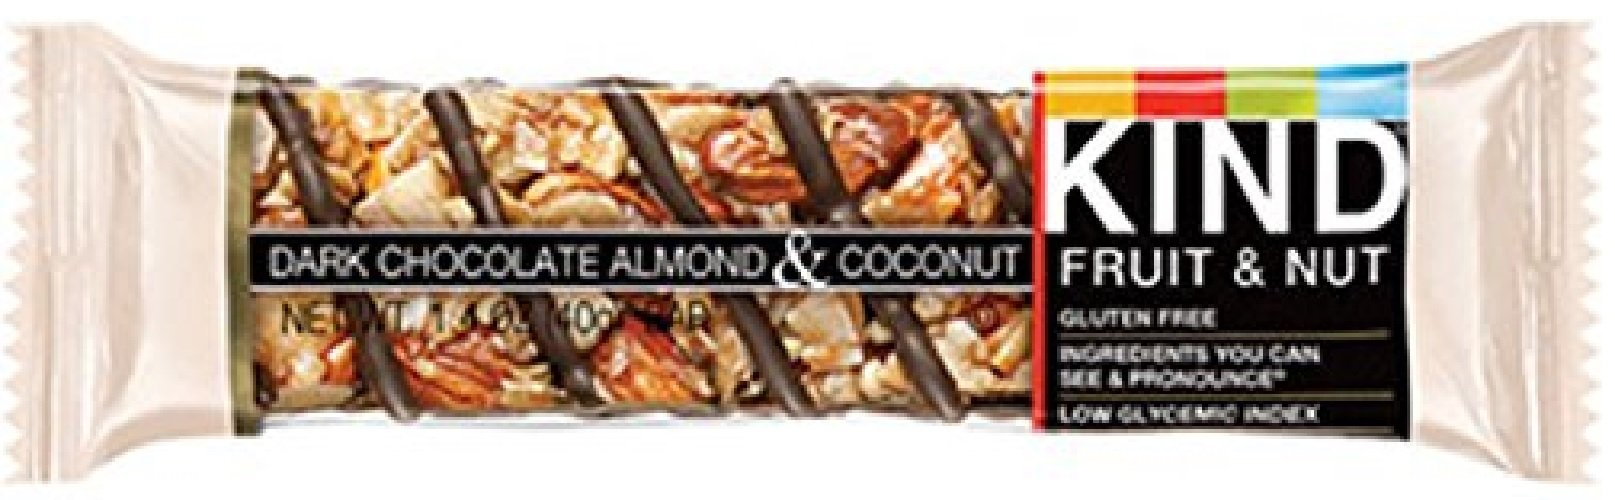 Kind Bar Drk Choc Almnd Ccnt by KIND (Image #1)